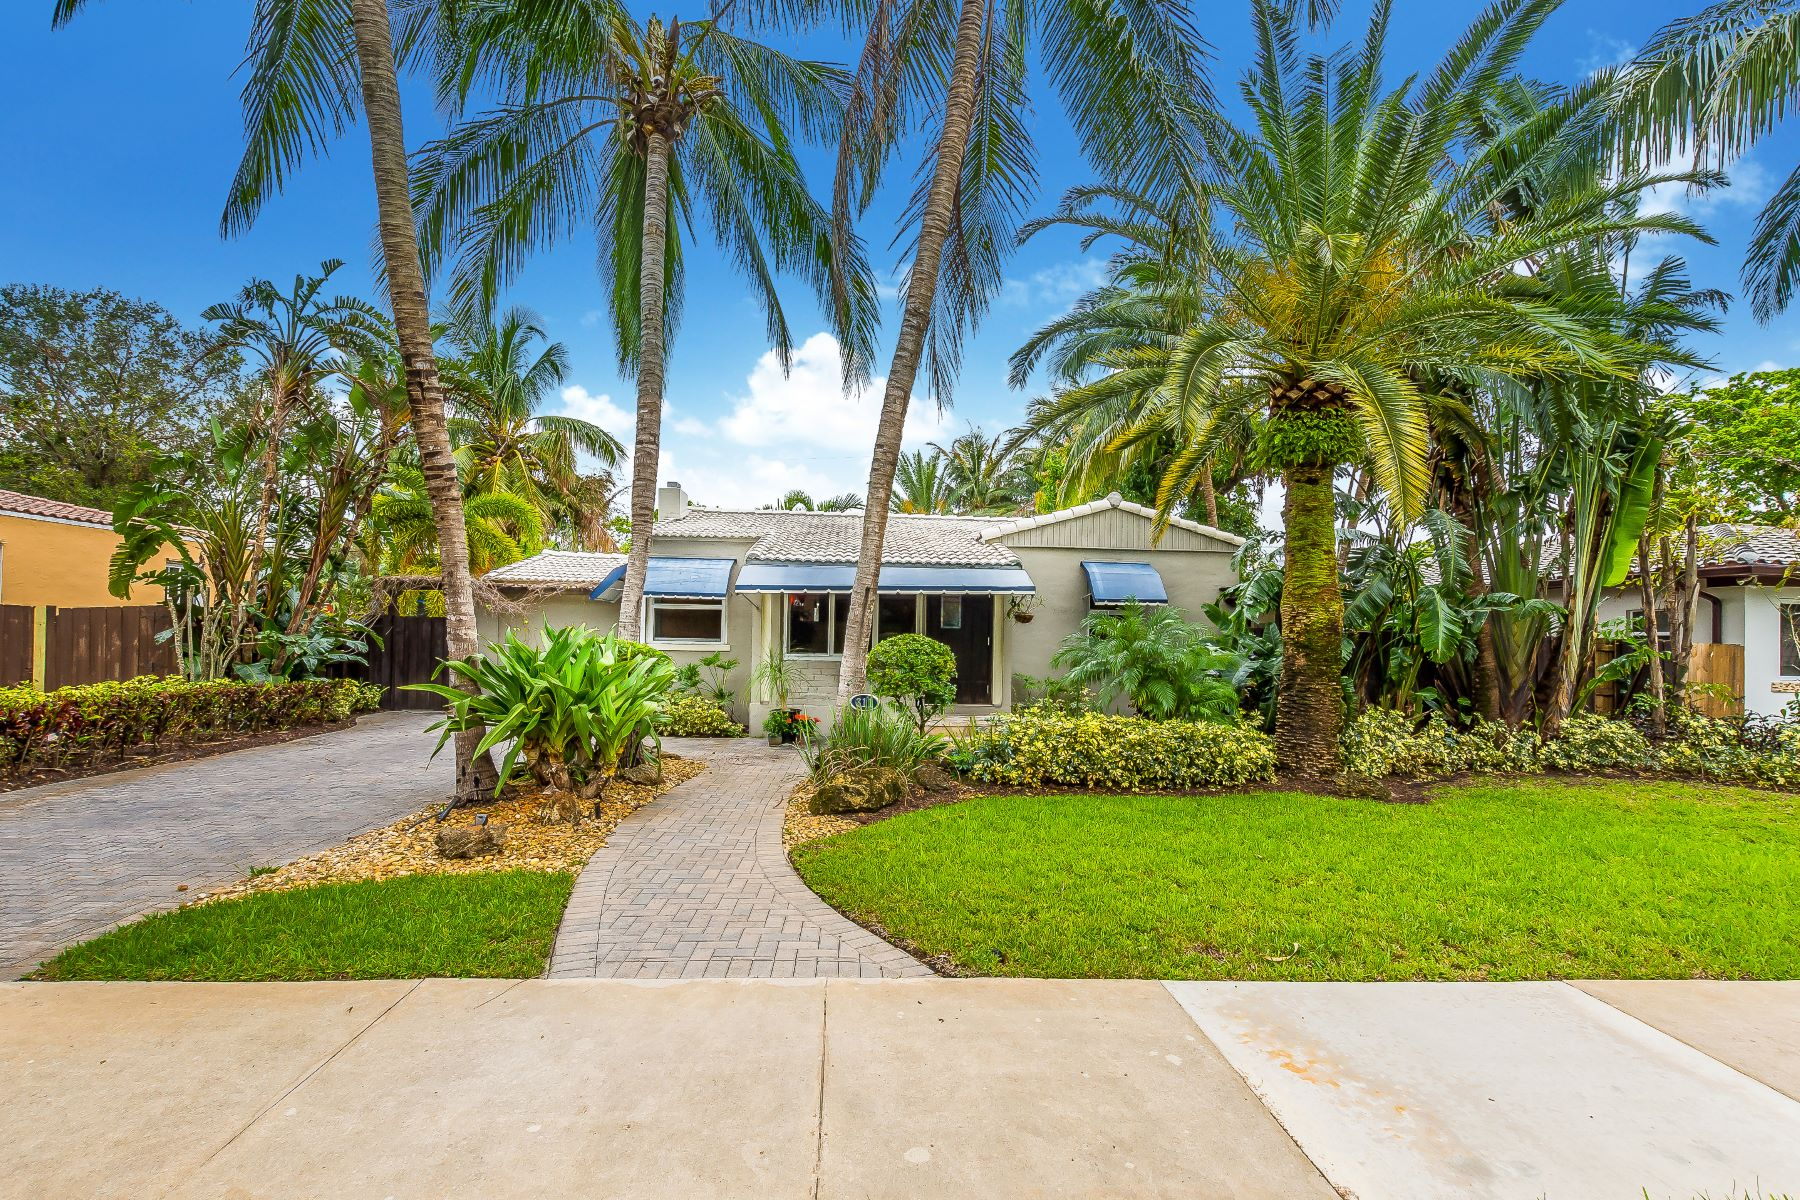 House for Sale at 311 Hibiscus Dr 311 Hibiscus Dr Miami Springs, Florida 33166 United States